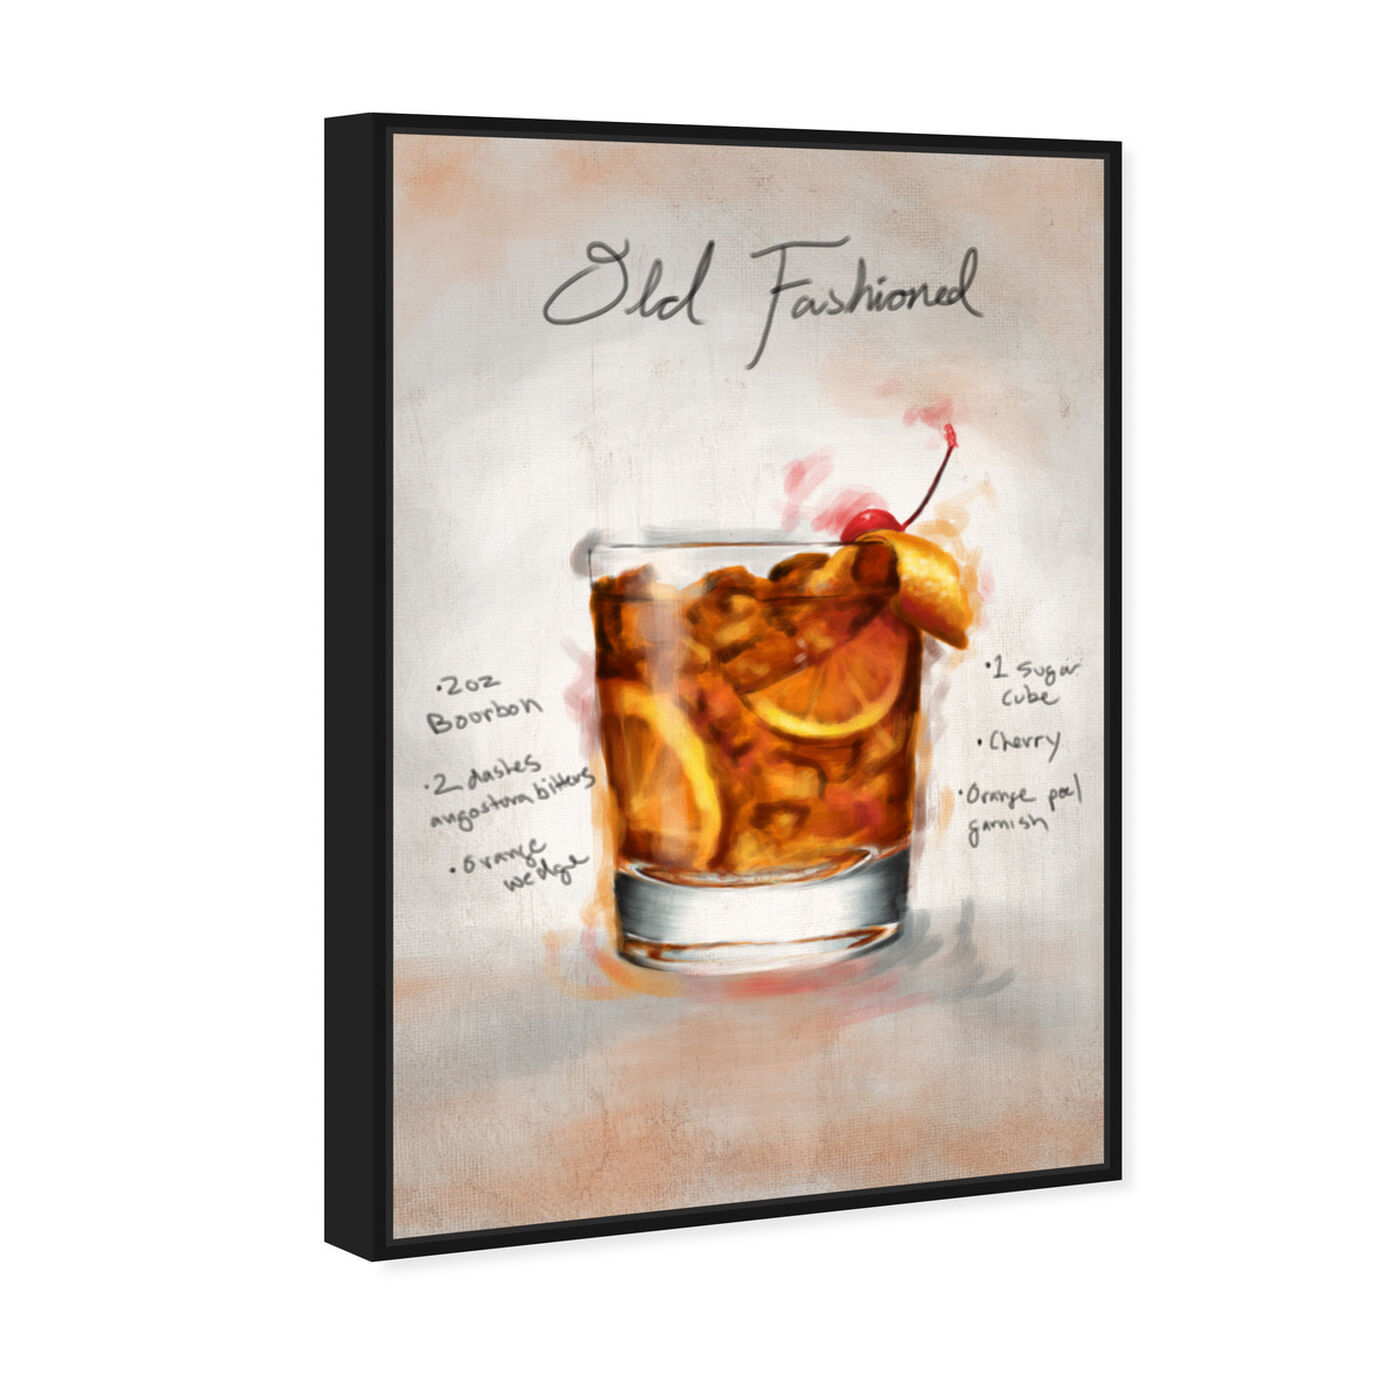 Angled view of Old Fashioned featuring drinks and spirits and cocktails art.